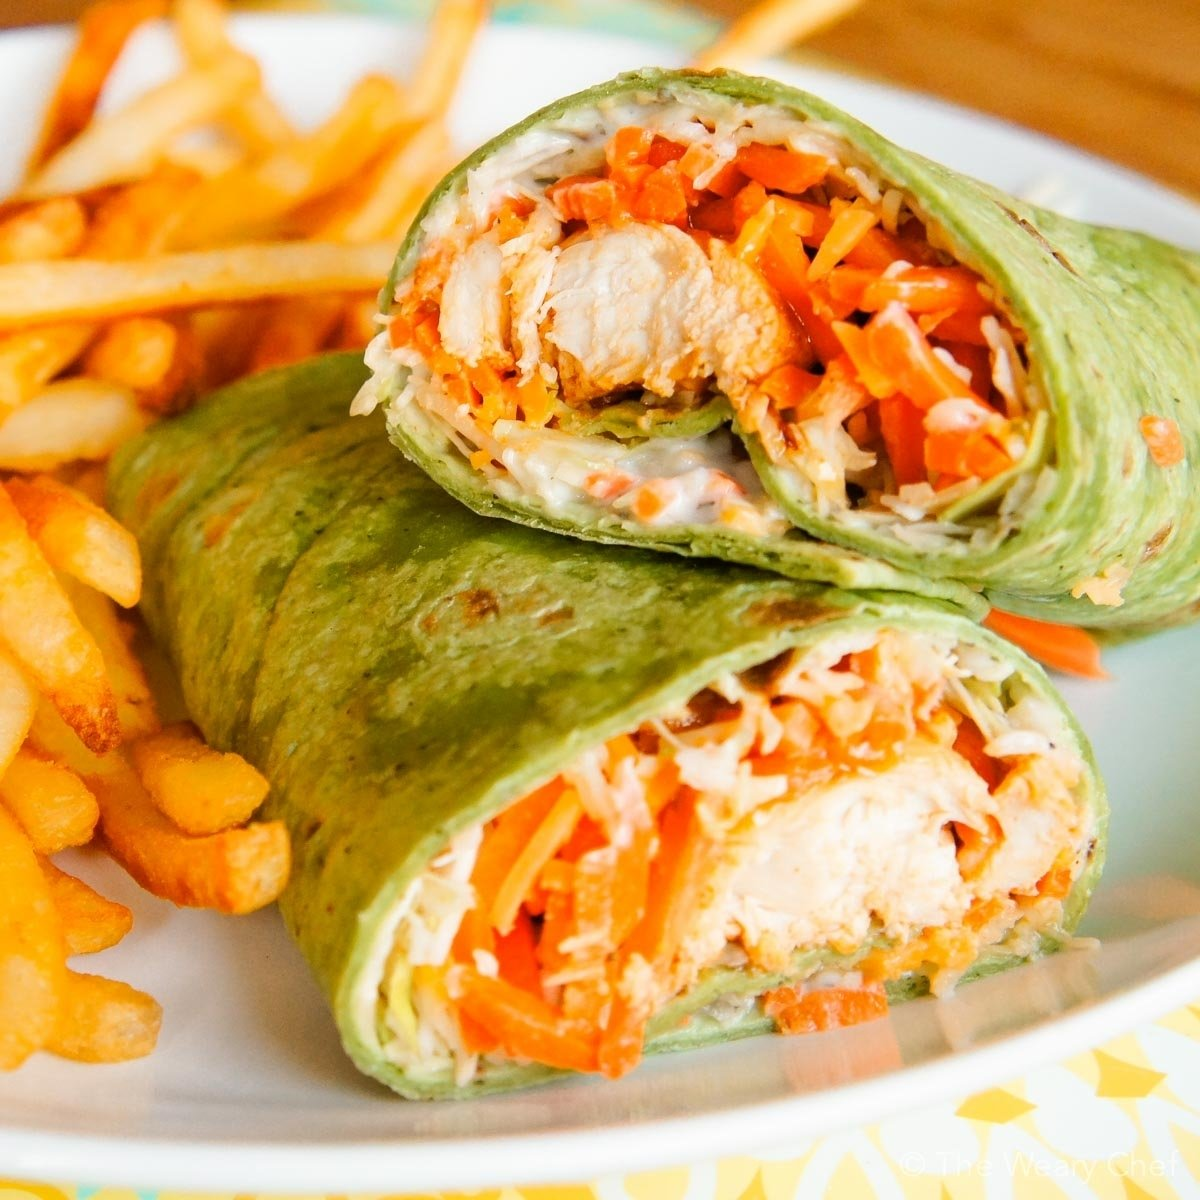 10 Most Recommended Easy Supper Ideas For Families buffalo chicken wraps a fun and tasty dinner idea the weary chef 13 2021